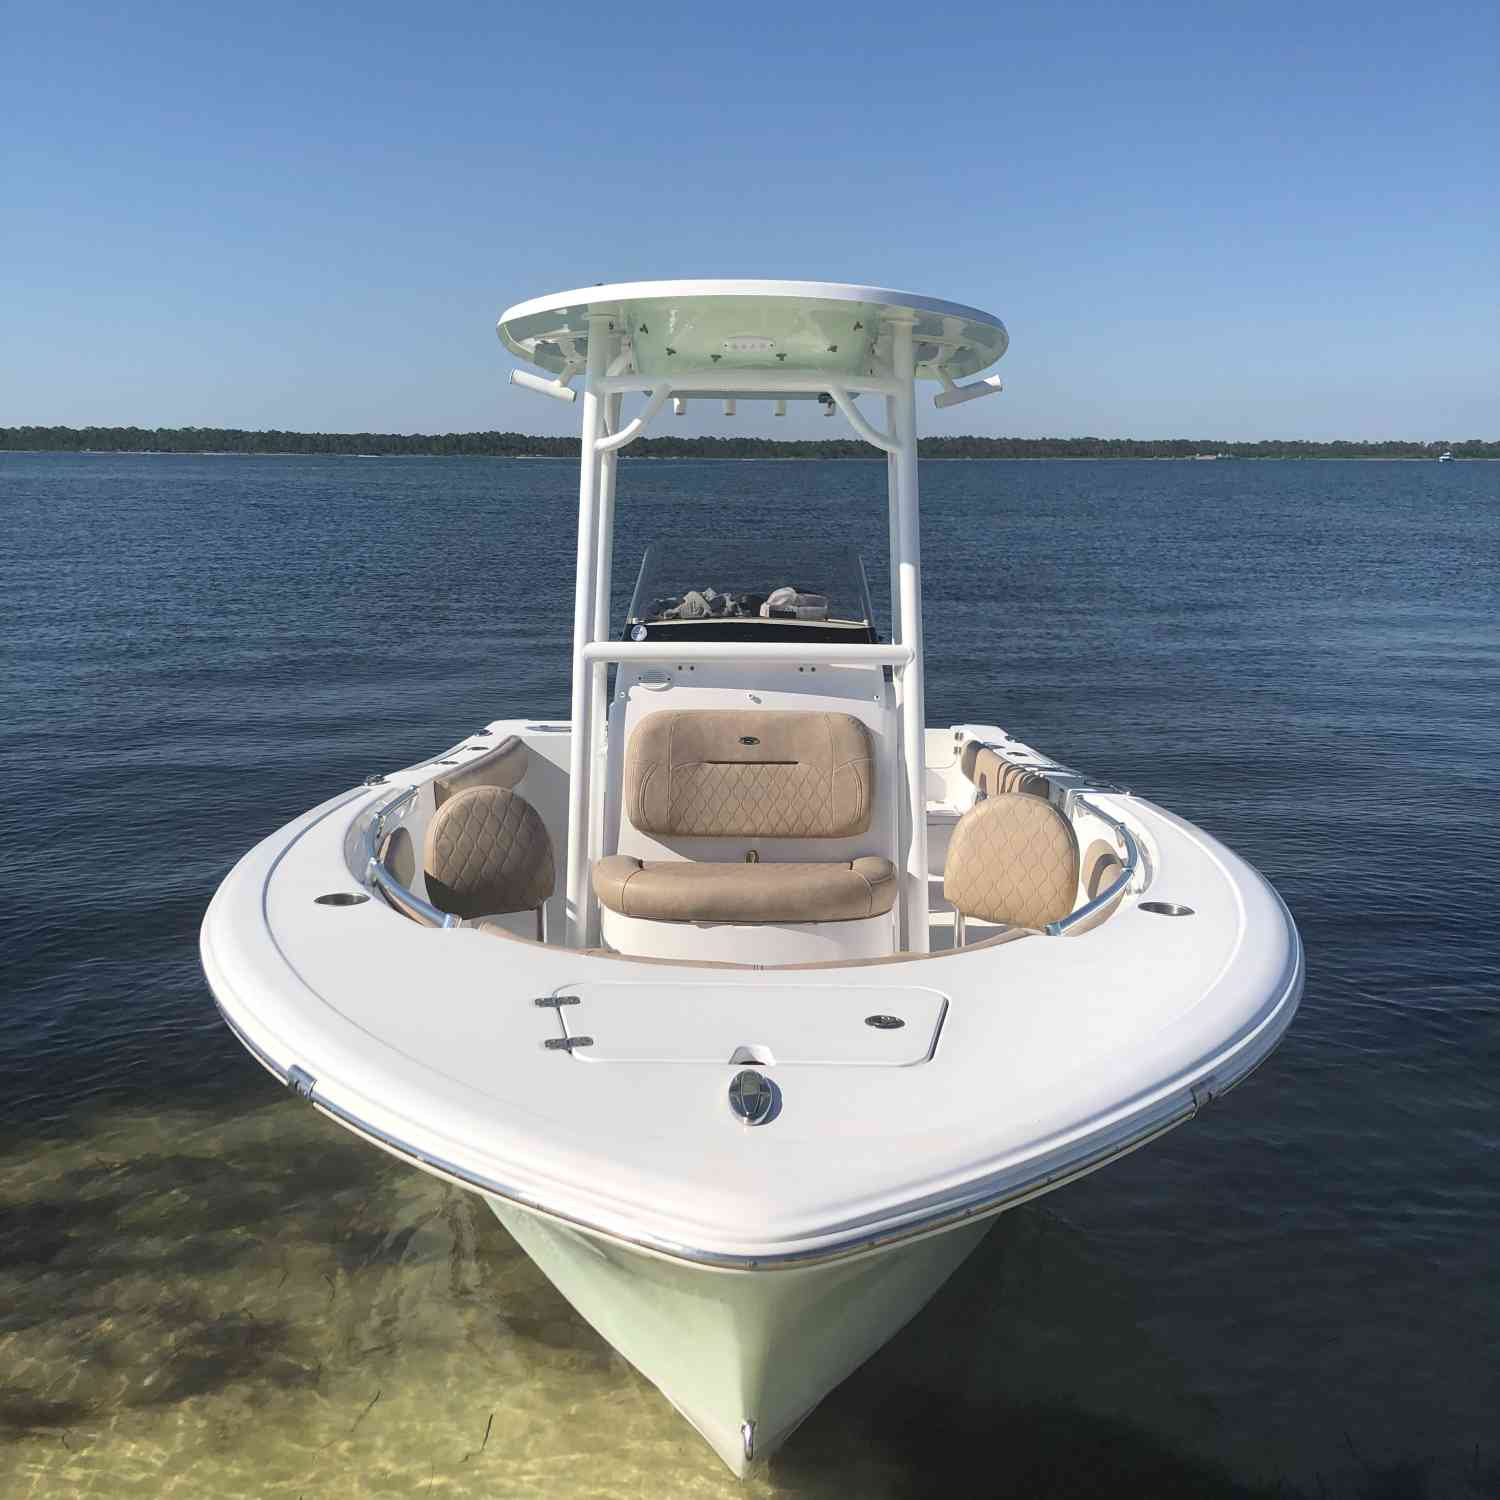 Title: Perfect Afternoon Getaway - On board their Sportsman Open 212 Center Console - Location: Pensacola, FL. Participating in the Photo Contest #SportsmanSeptember2019